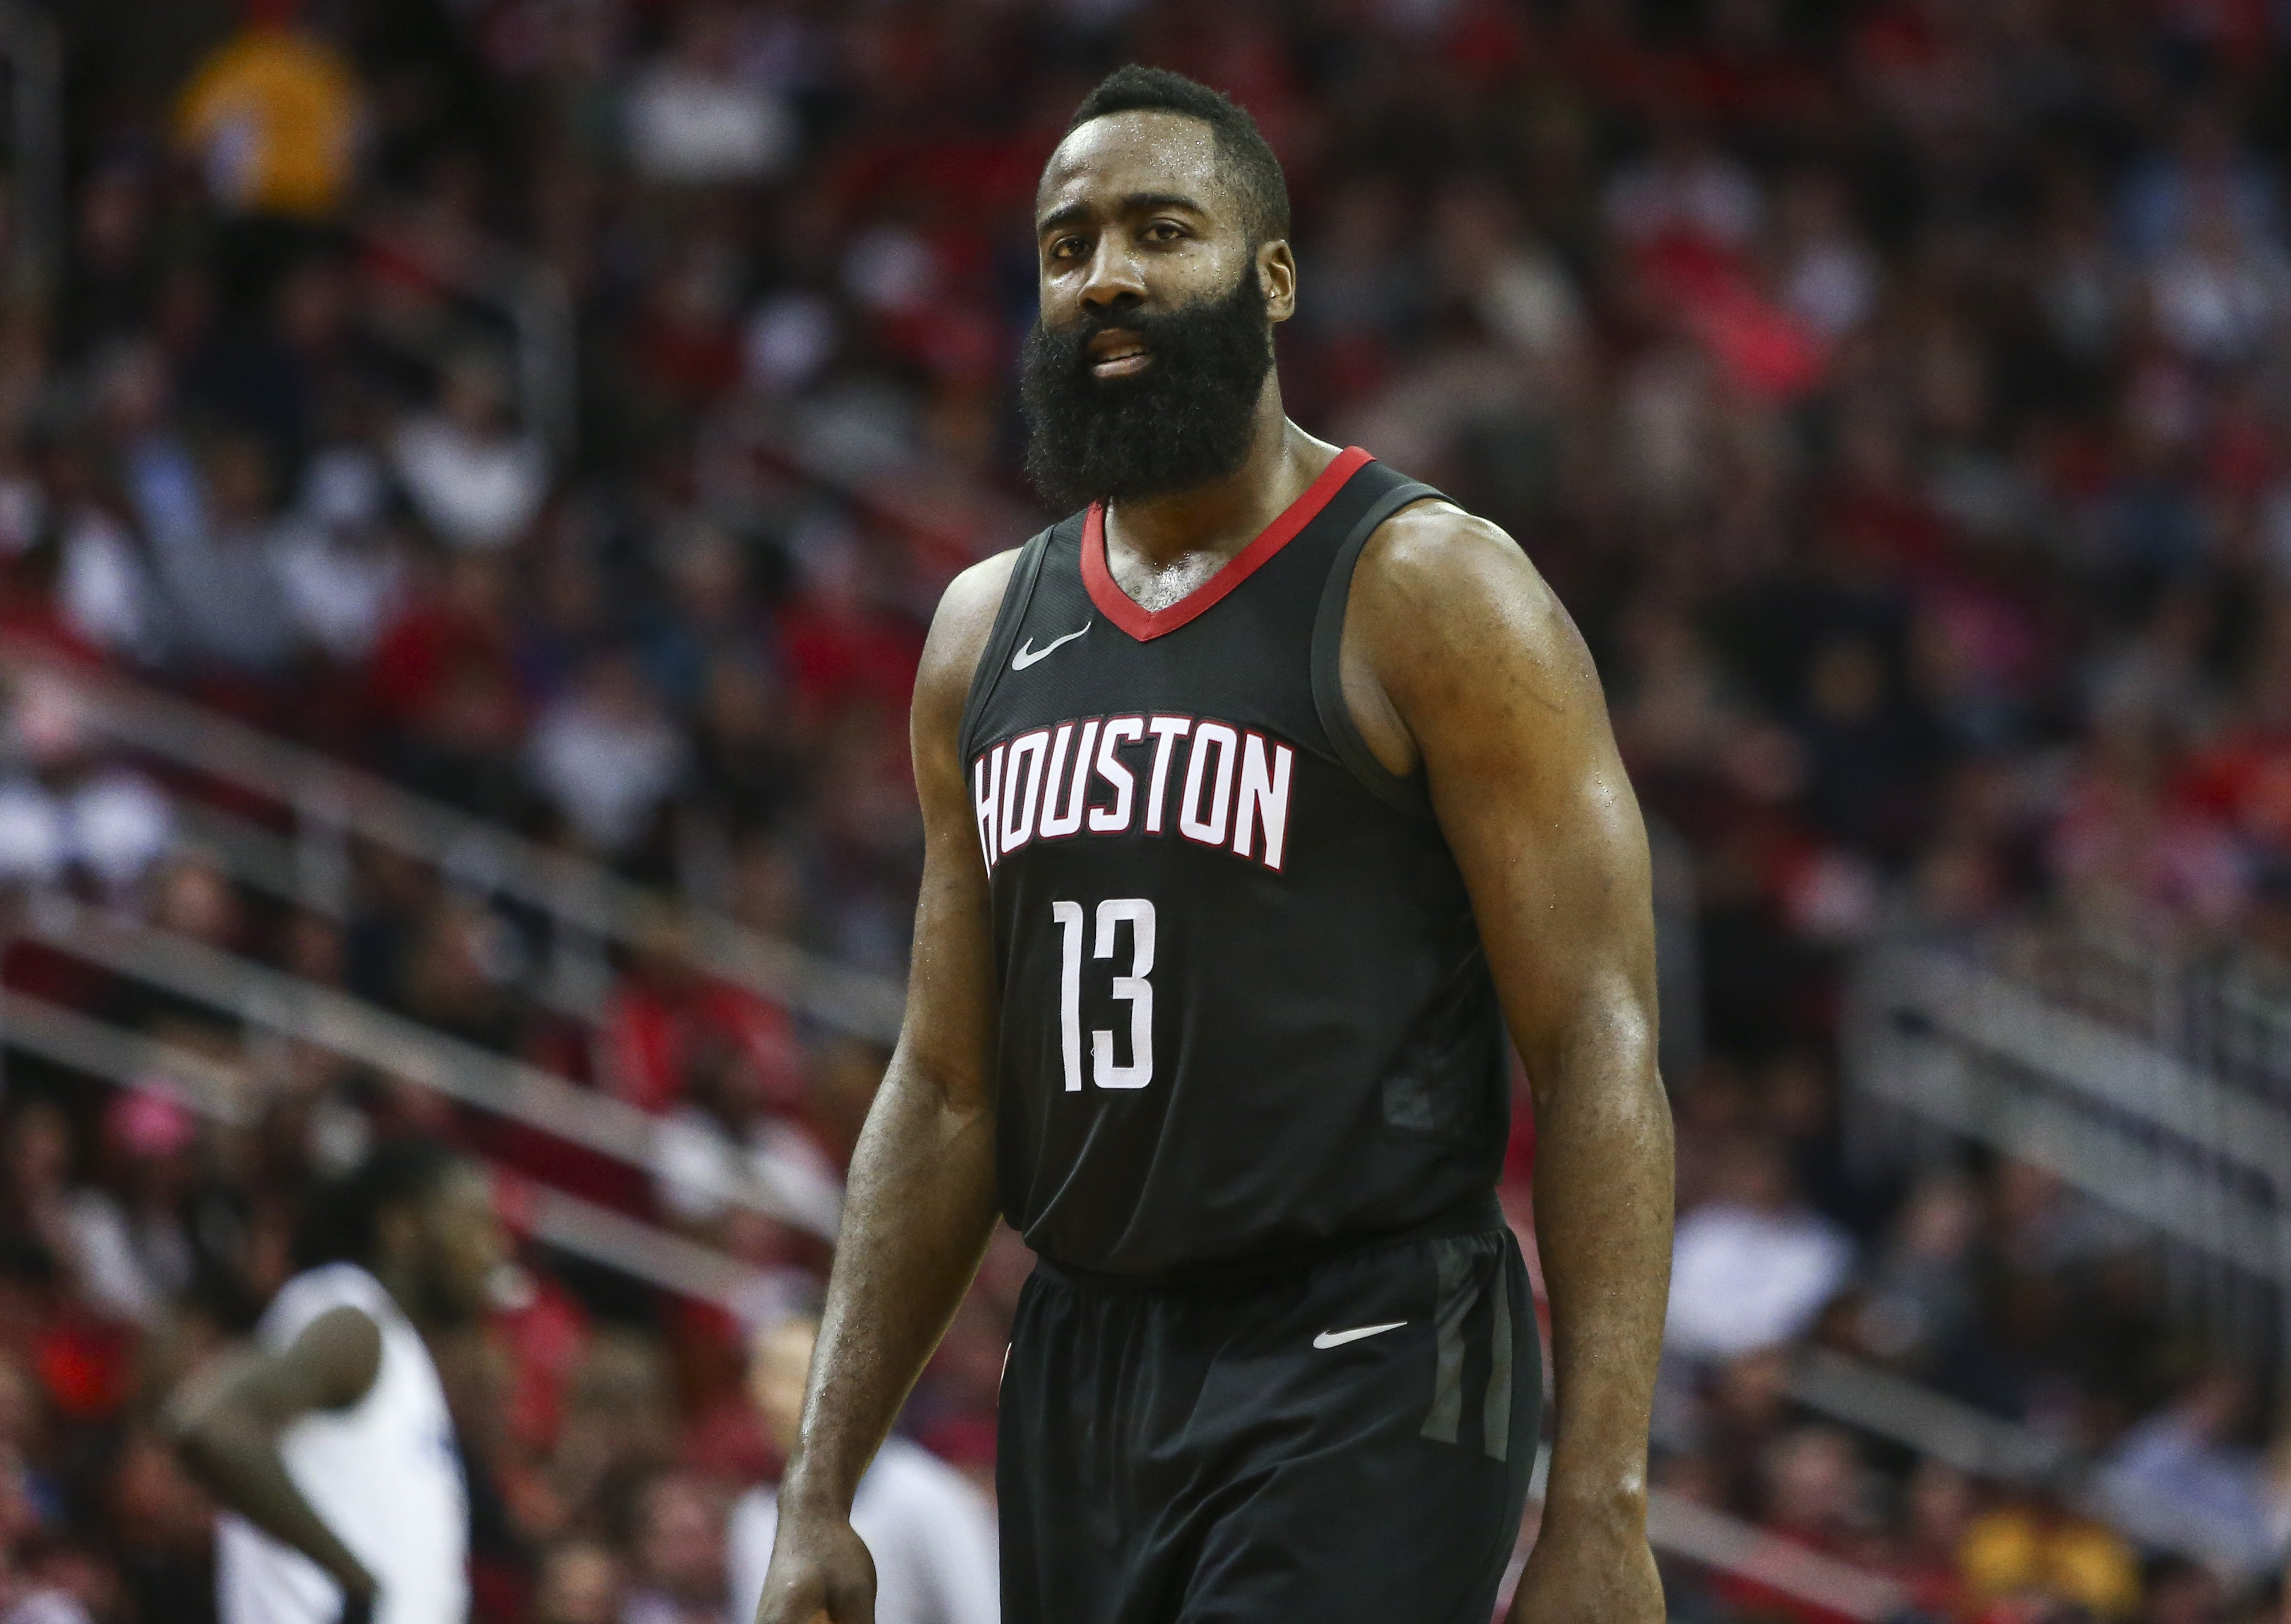 c4d85e30a5c0 Three-Man Weave  James Harden Drops 51 But Rockets Fall To Clippers